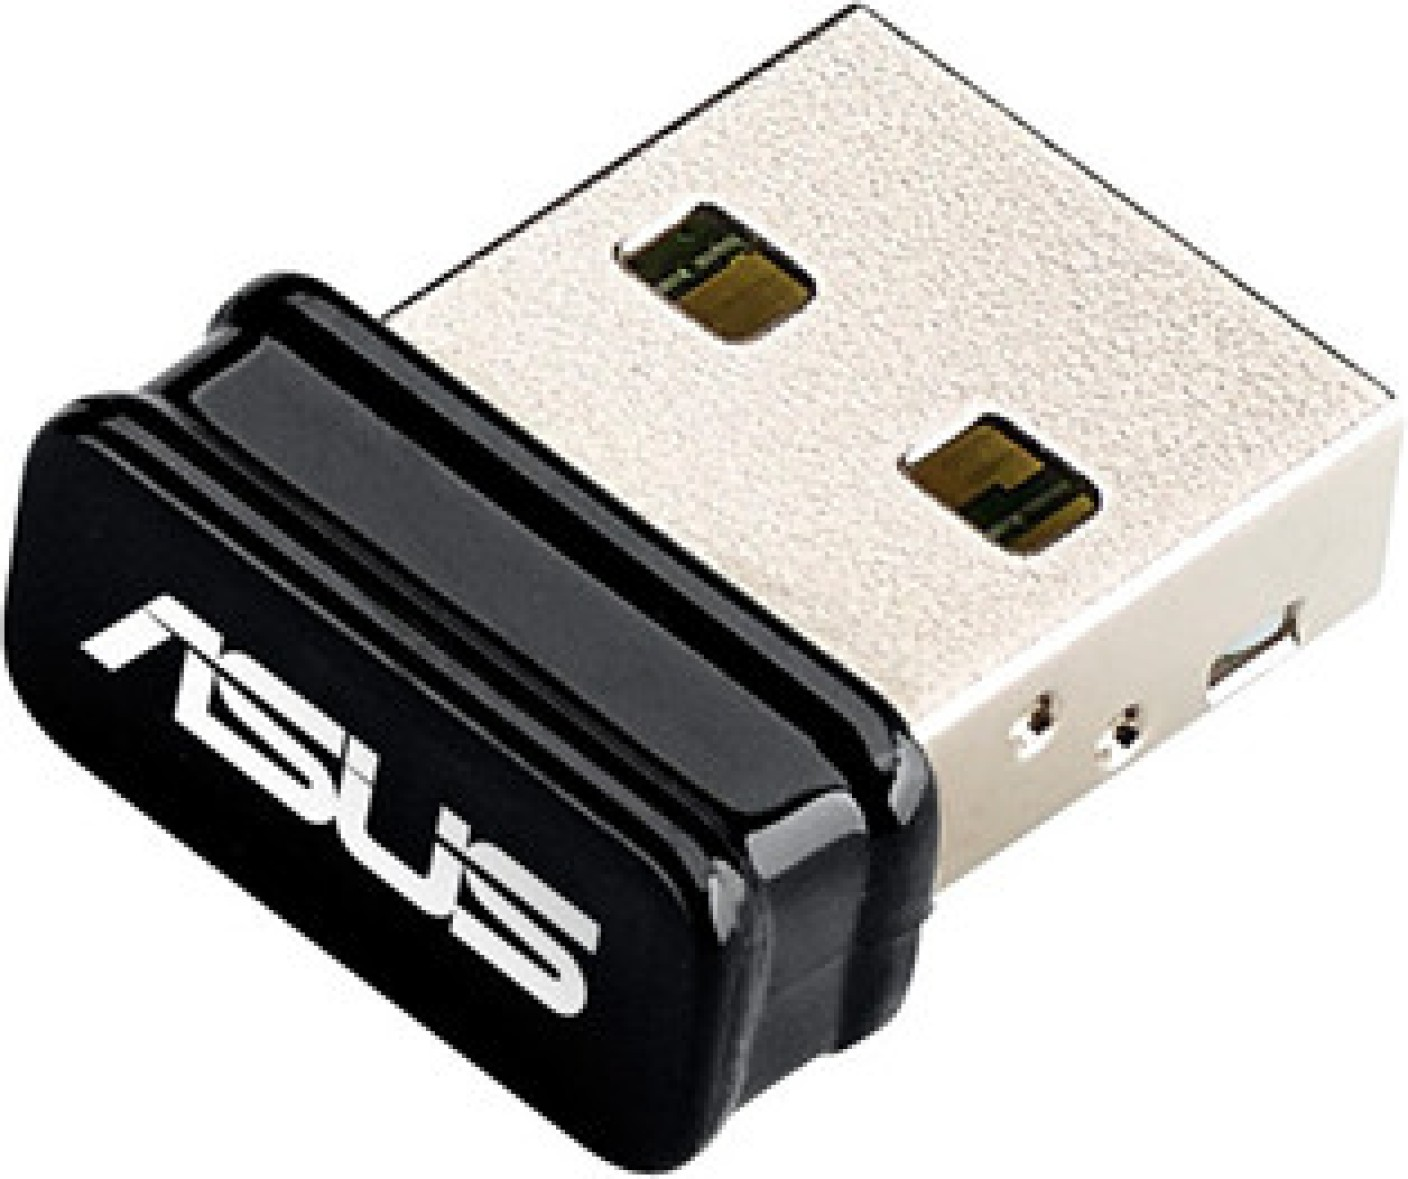 Nano wireless usb adapter driver -  Nano Wireless N150 Usb Adapter Share